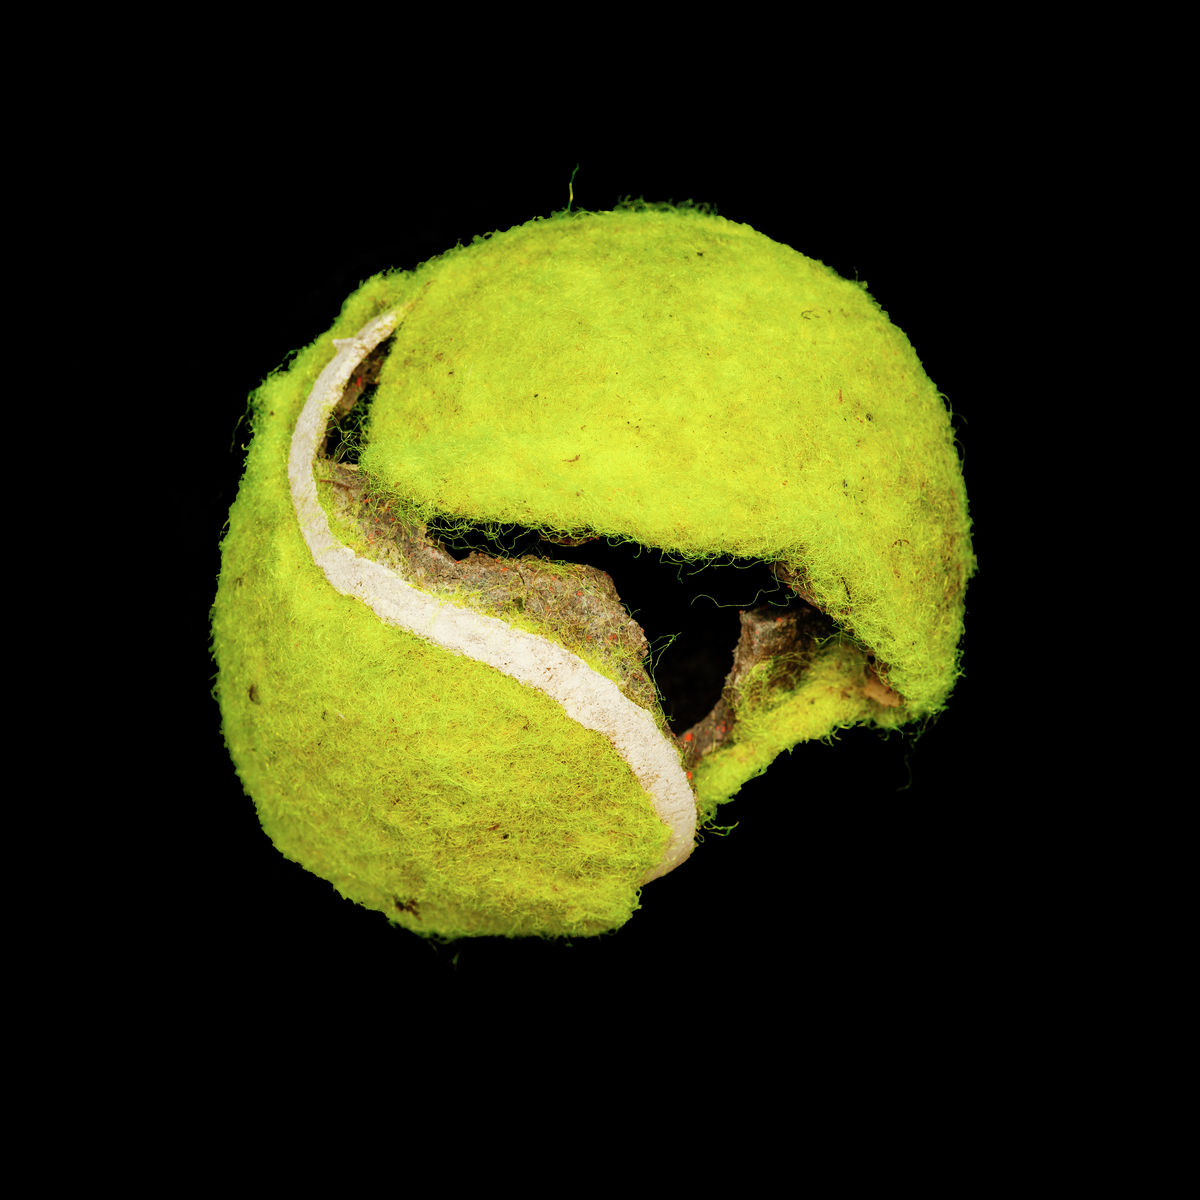 Yellow tennis ball on black background print